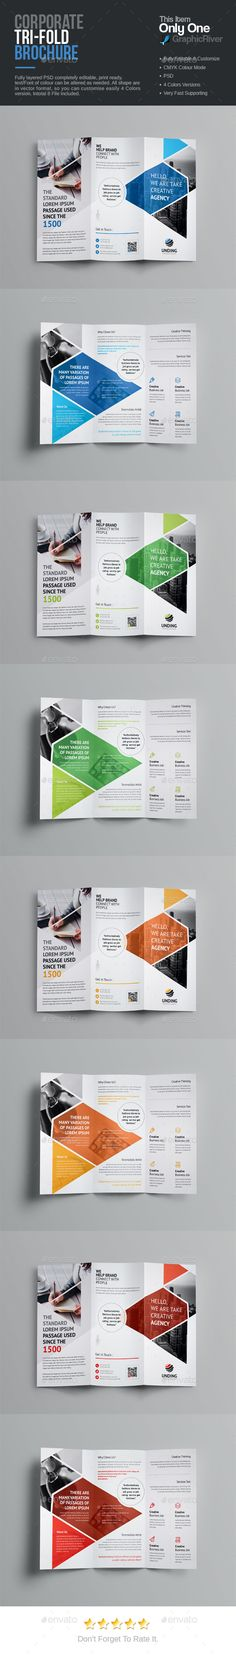 Modern Abstract Green Trifold Brochures Print Template InDesign INDD     Modern Abstract Green Trifold Brochures Print Template InDesign INDD   Brochure  Templates   Pinterest   Print templates  Brochures and Template